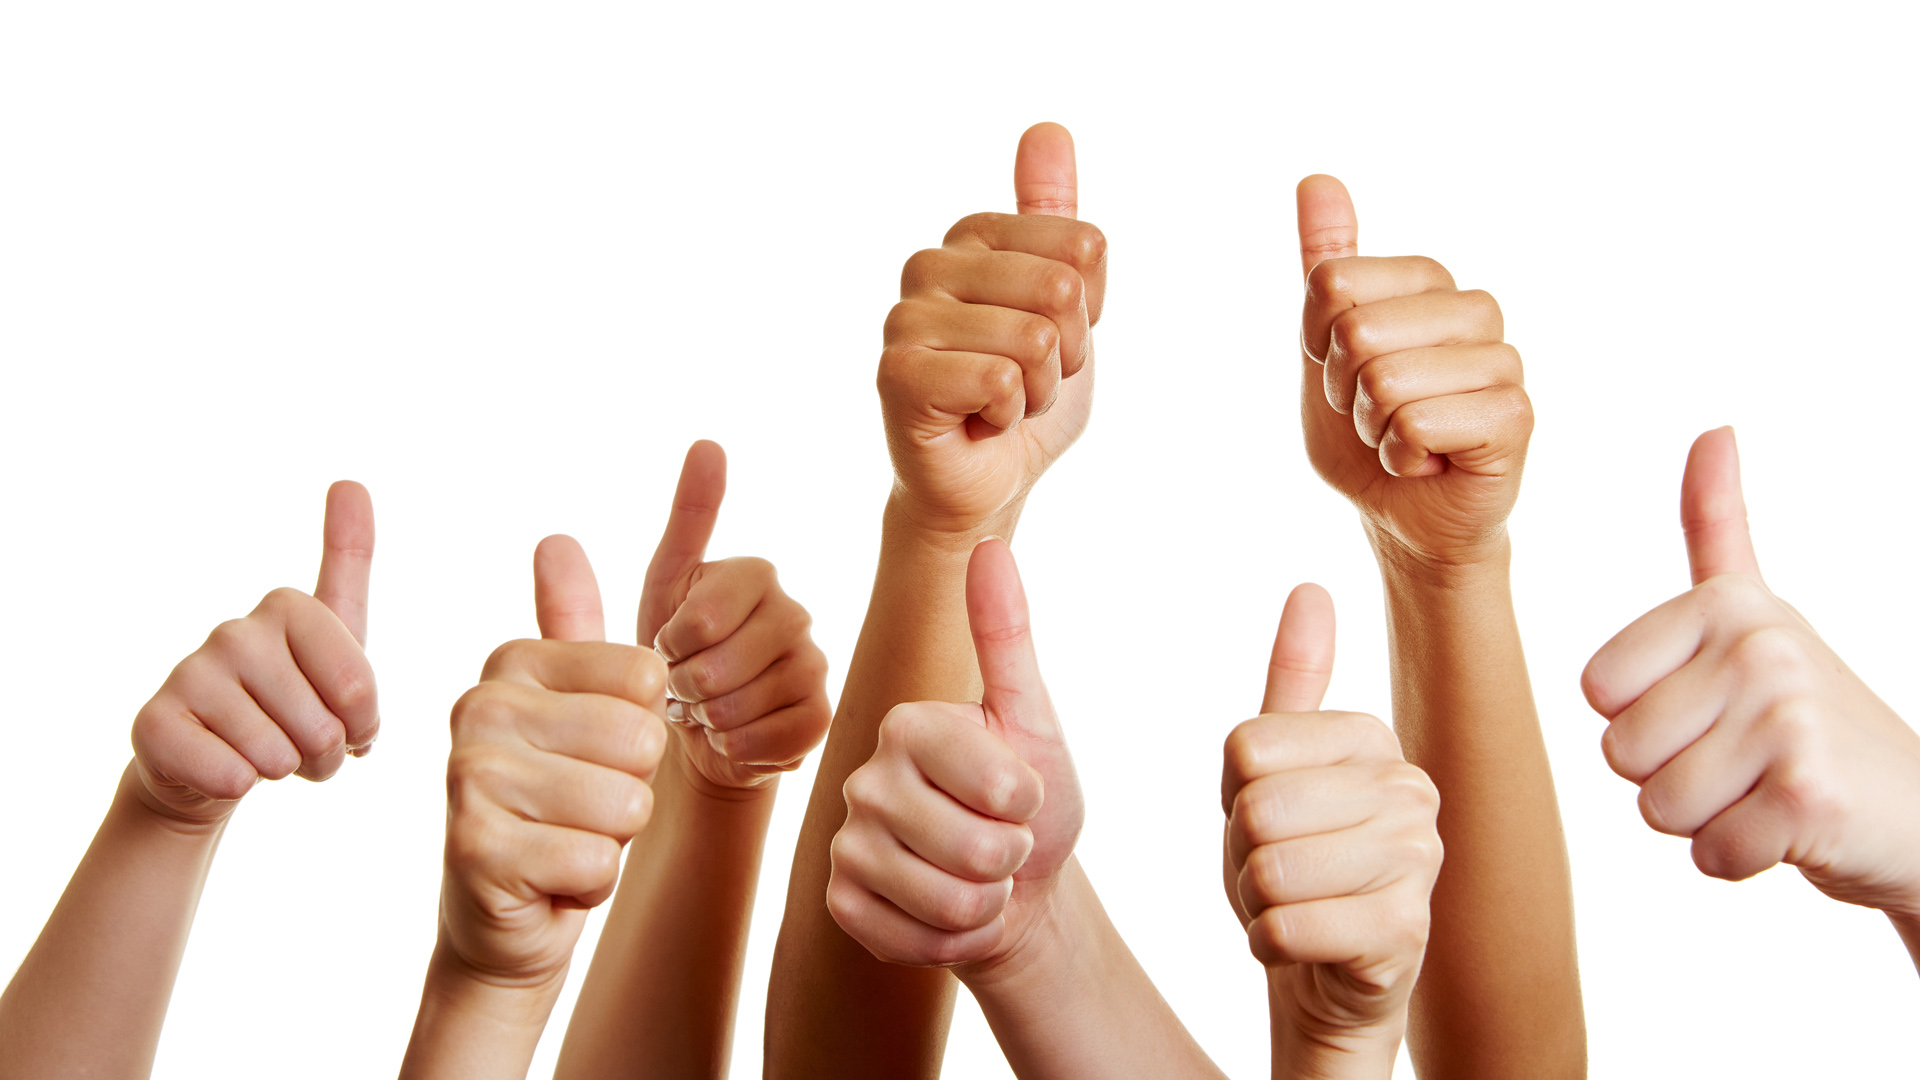 thumbs up solidor